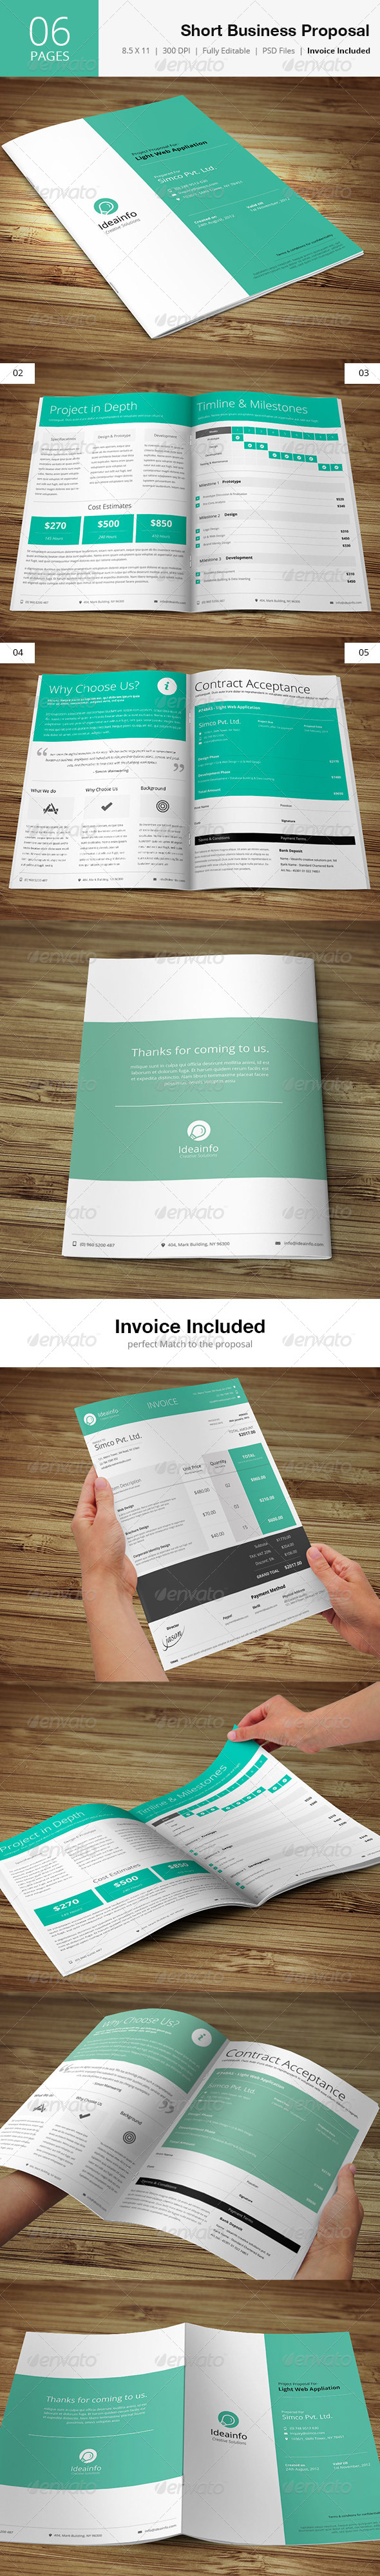 GraphicRiver Short & Quick Business Proposal 5031434